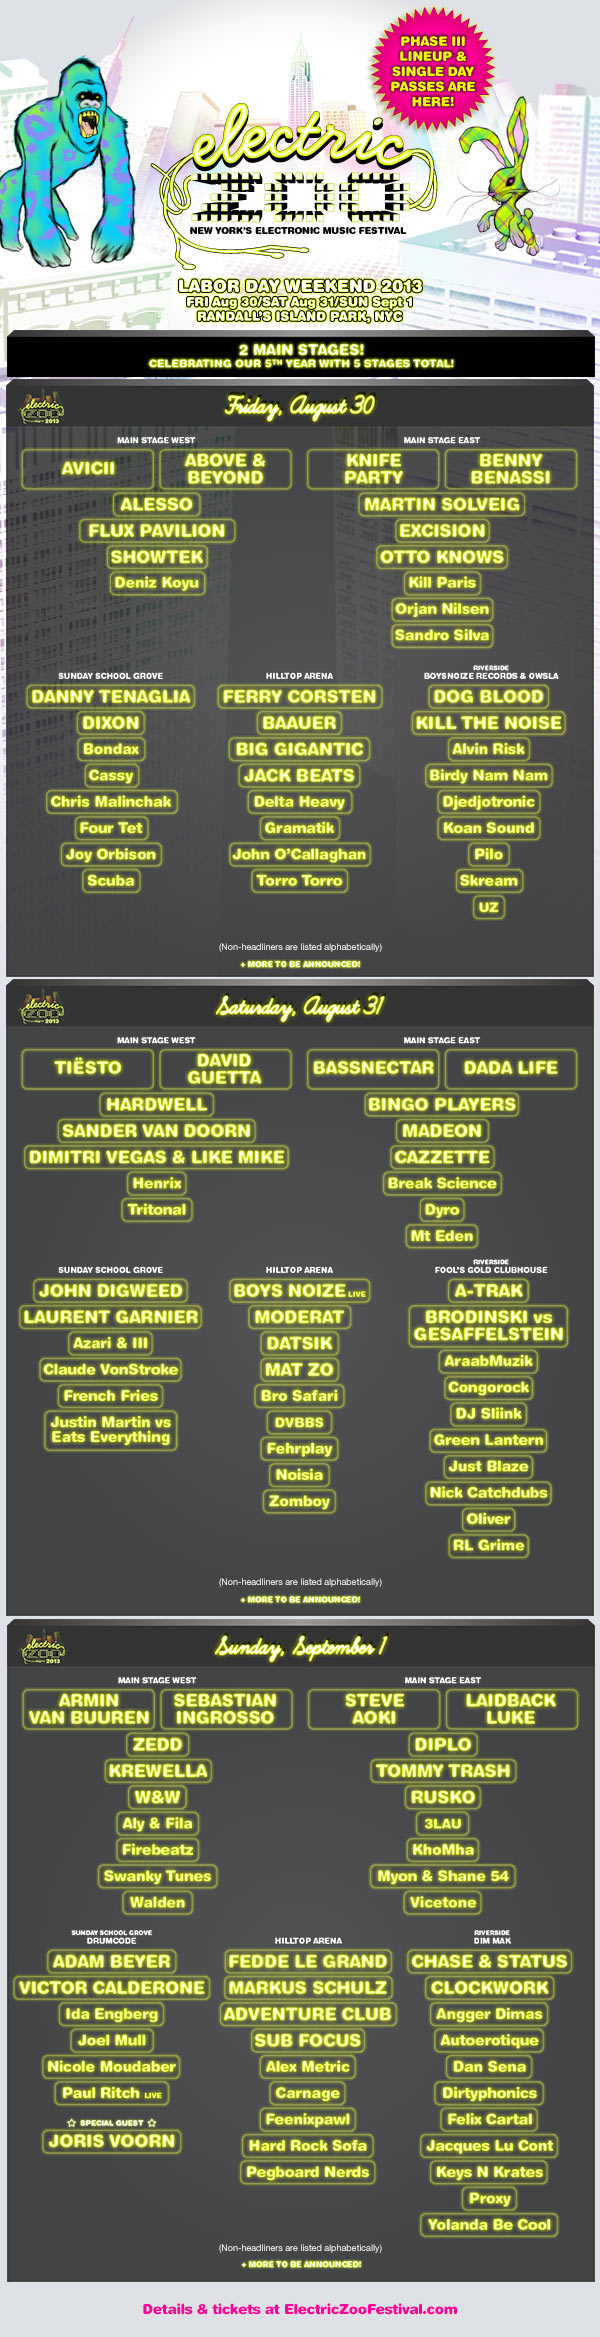 Electric Zoo Announces 2013 Lineup Including Tiesto, Knife Party, and ...